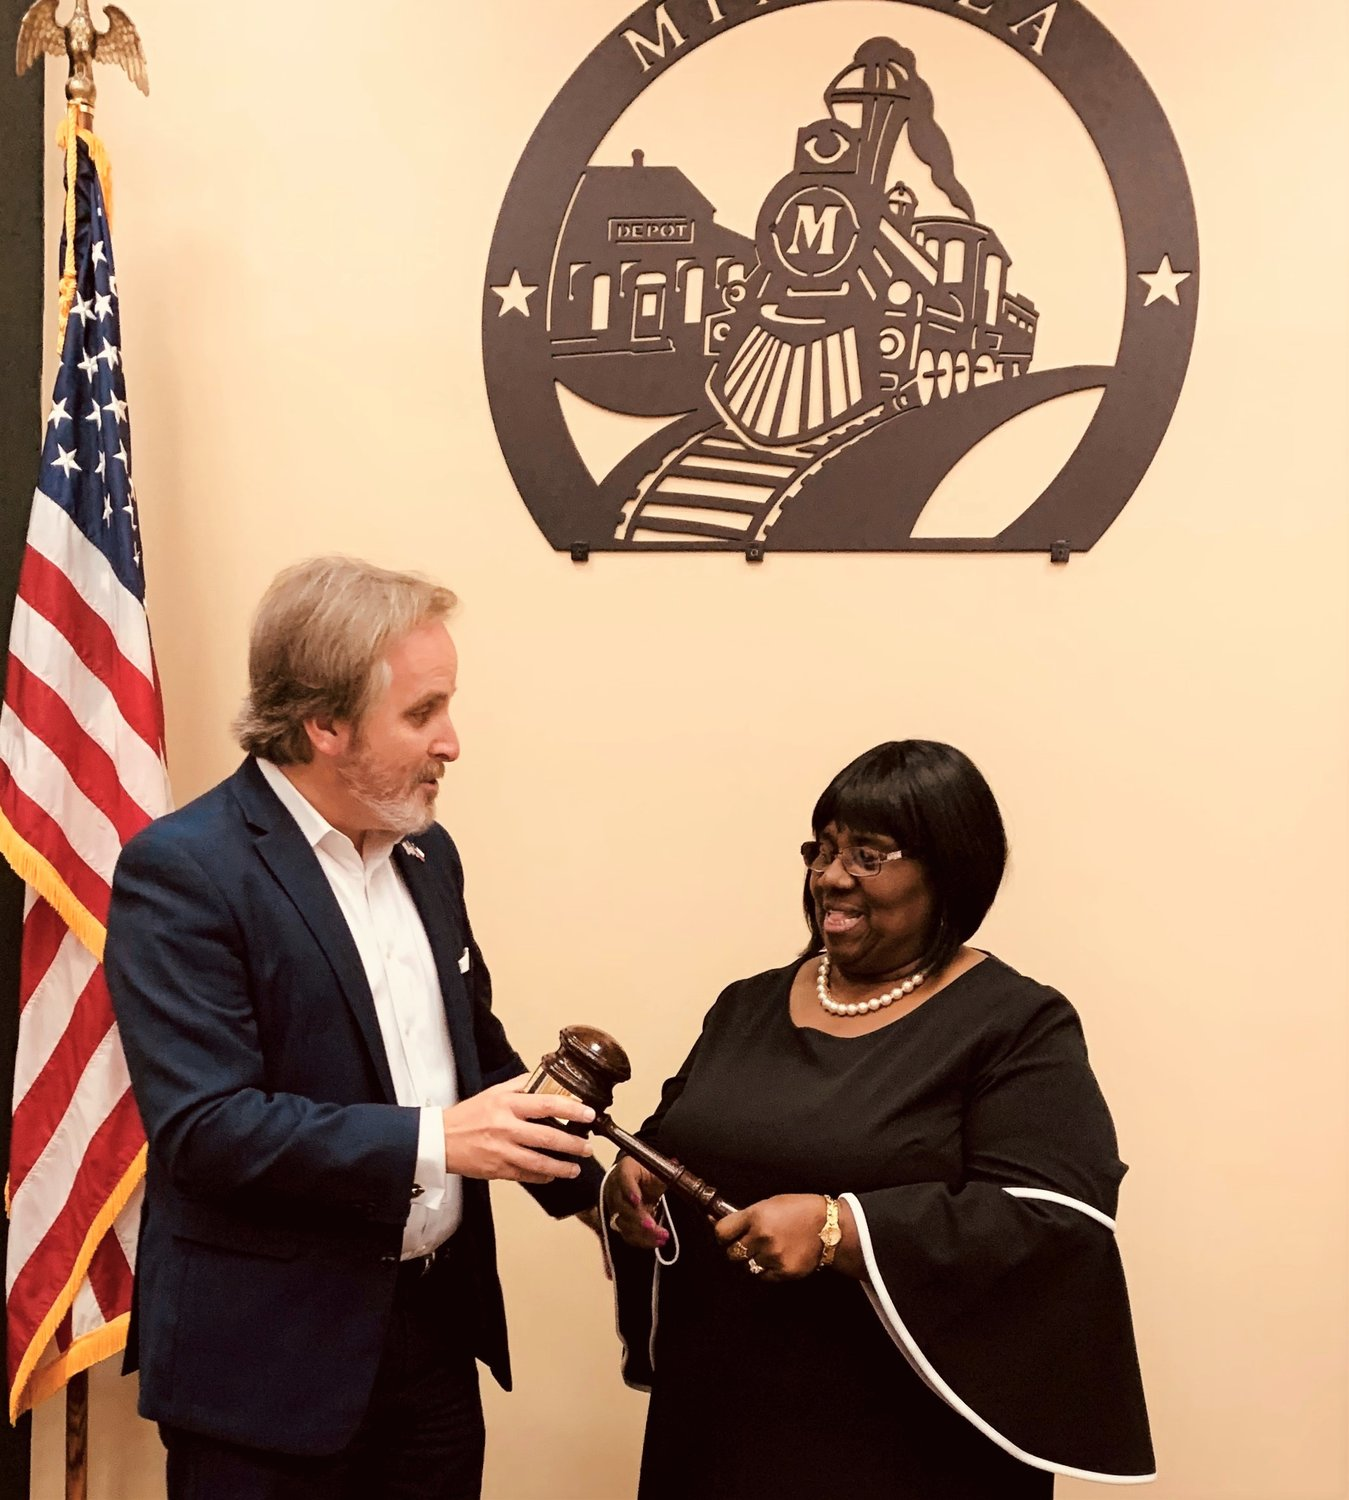 State Senator Bryan Hughes presents a state of Texas gavel to Novada Bigham, who has served on the Mineola City Council for 22 years. (Courtesy photo)